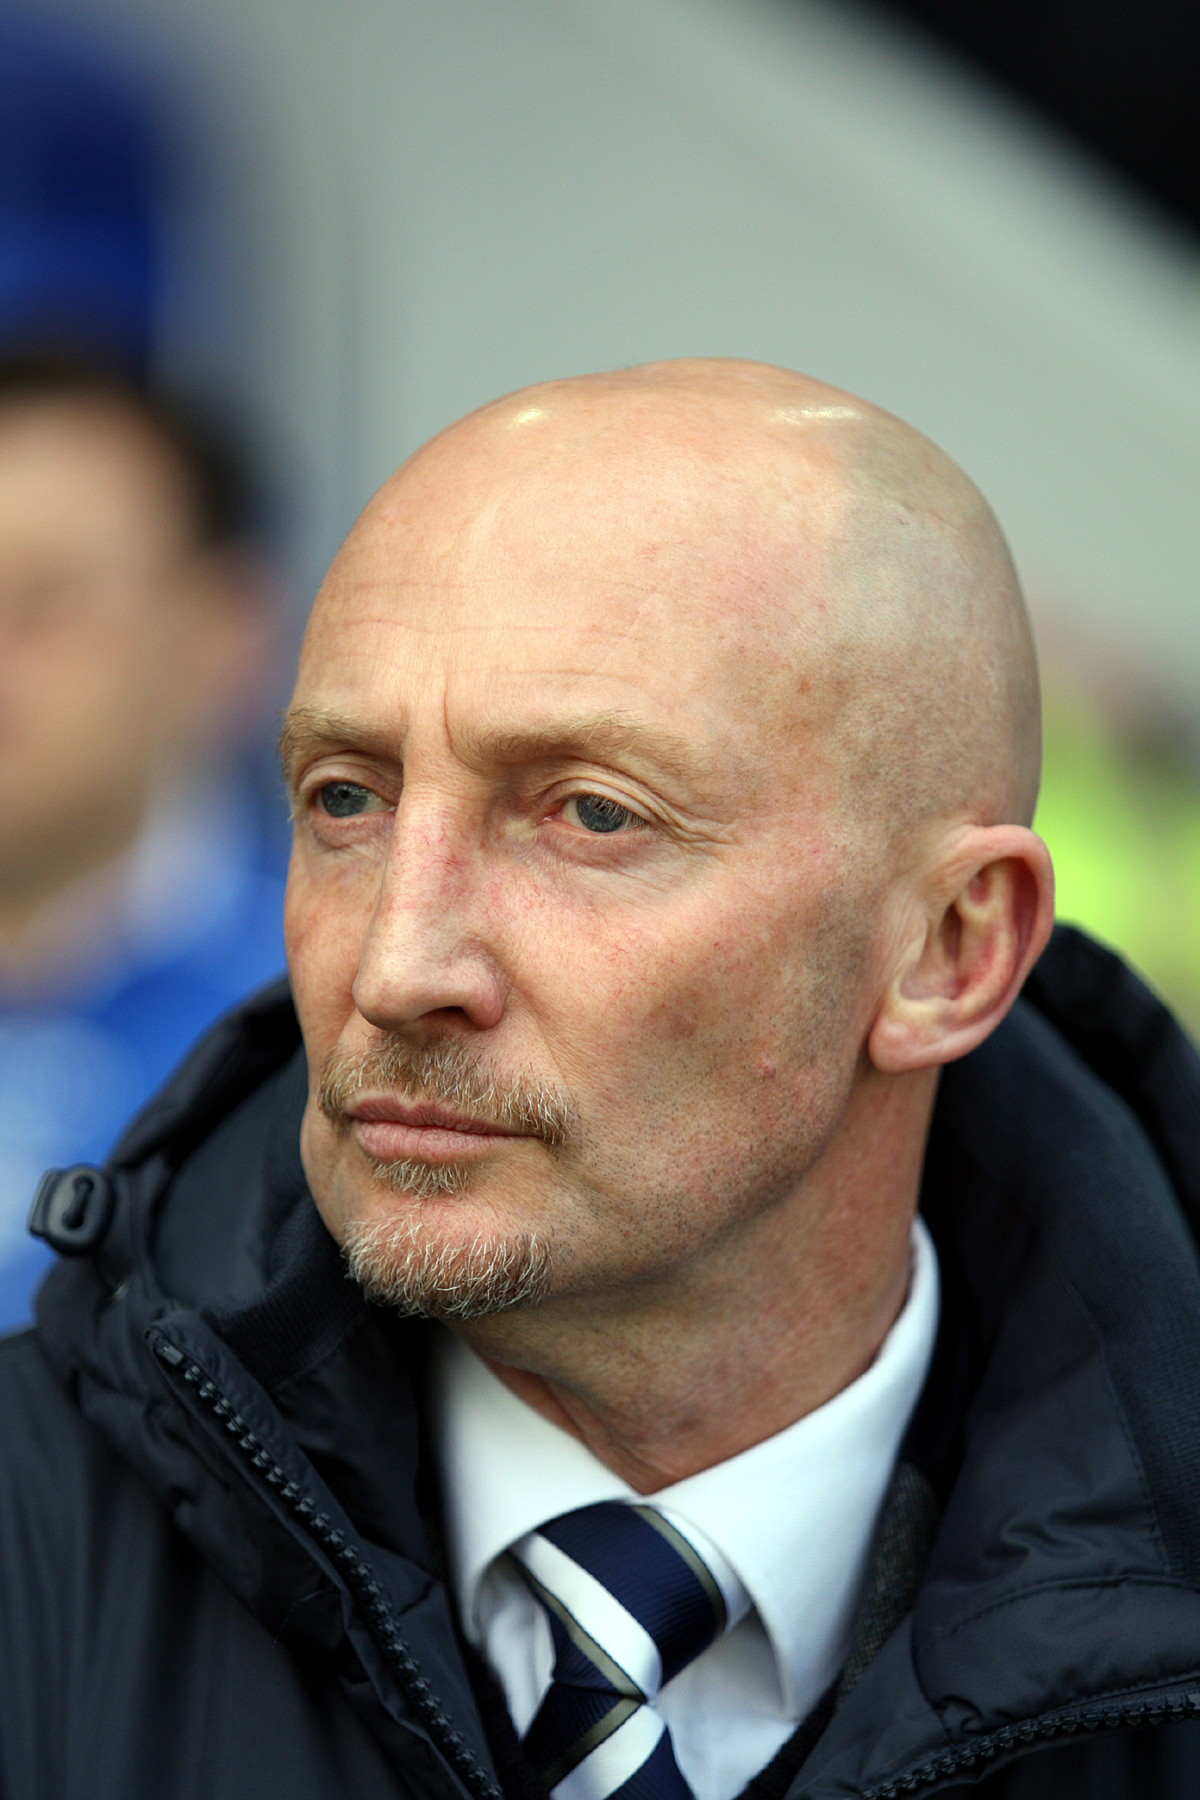 Lions manager Ian Holloway was a frustrated man after defeat to Leeds. Picture by Edmund Boyden.